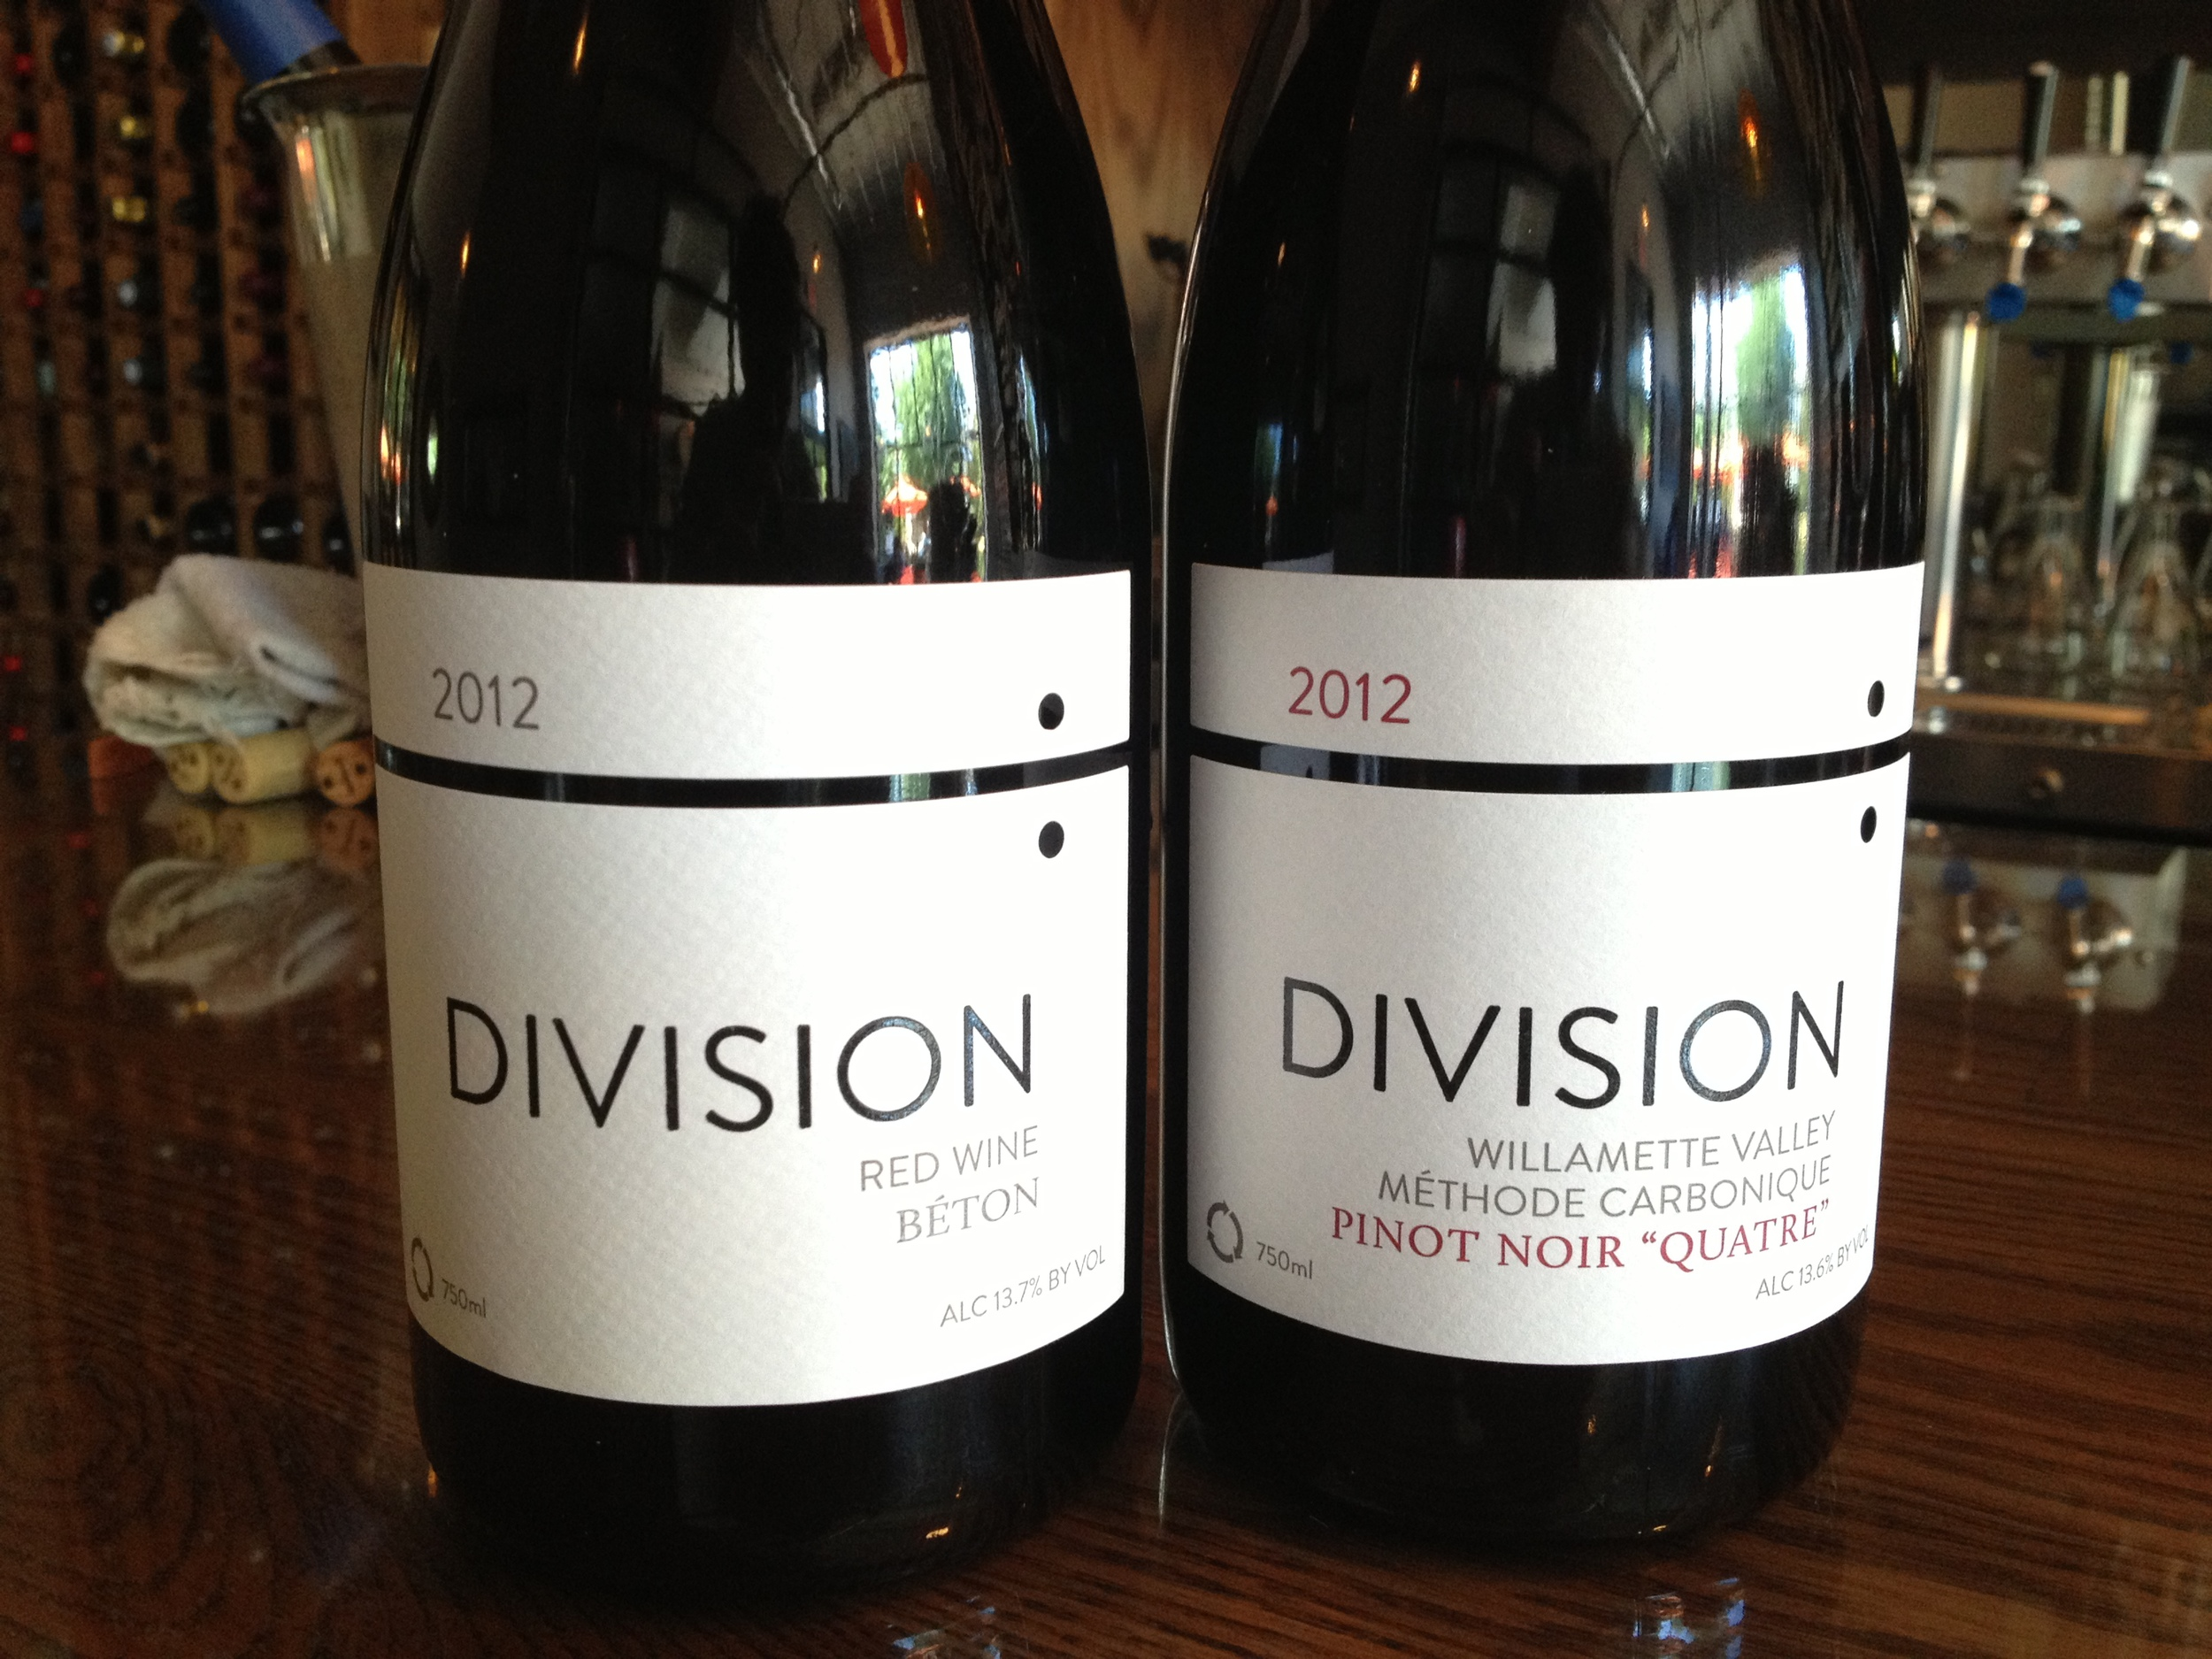 Division's Gamays, Chards and Pinots were tops. He's got a legit, low alcohol, earthy, sauvage style.